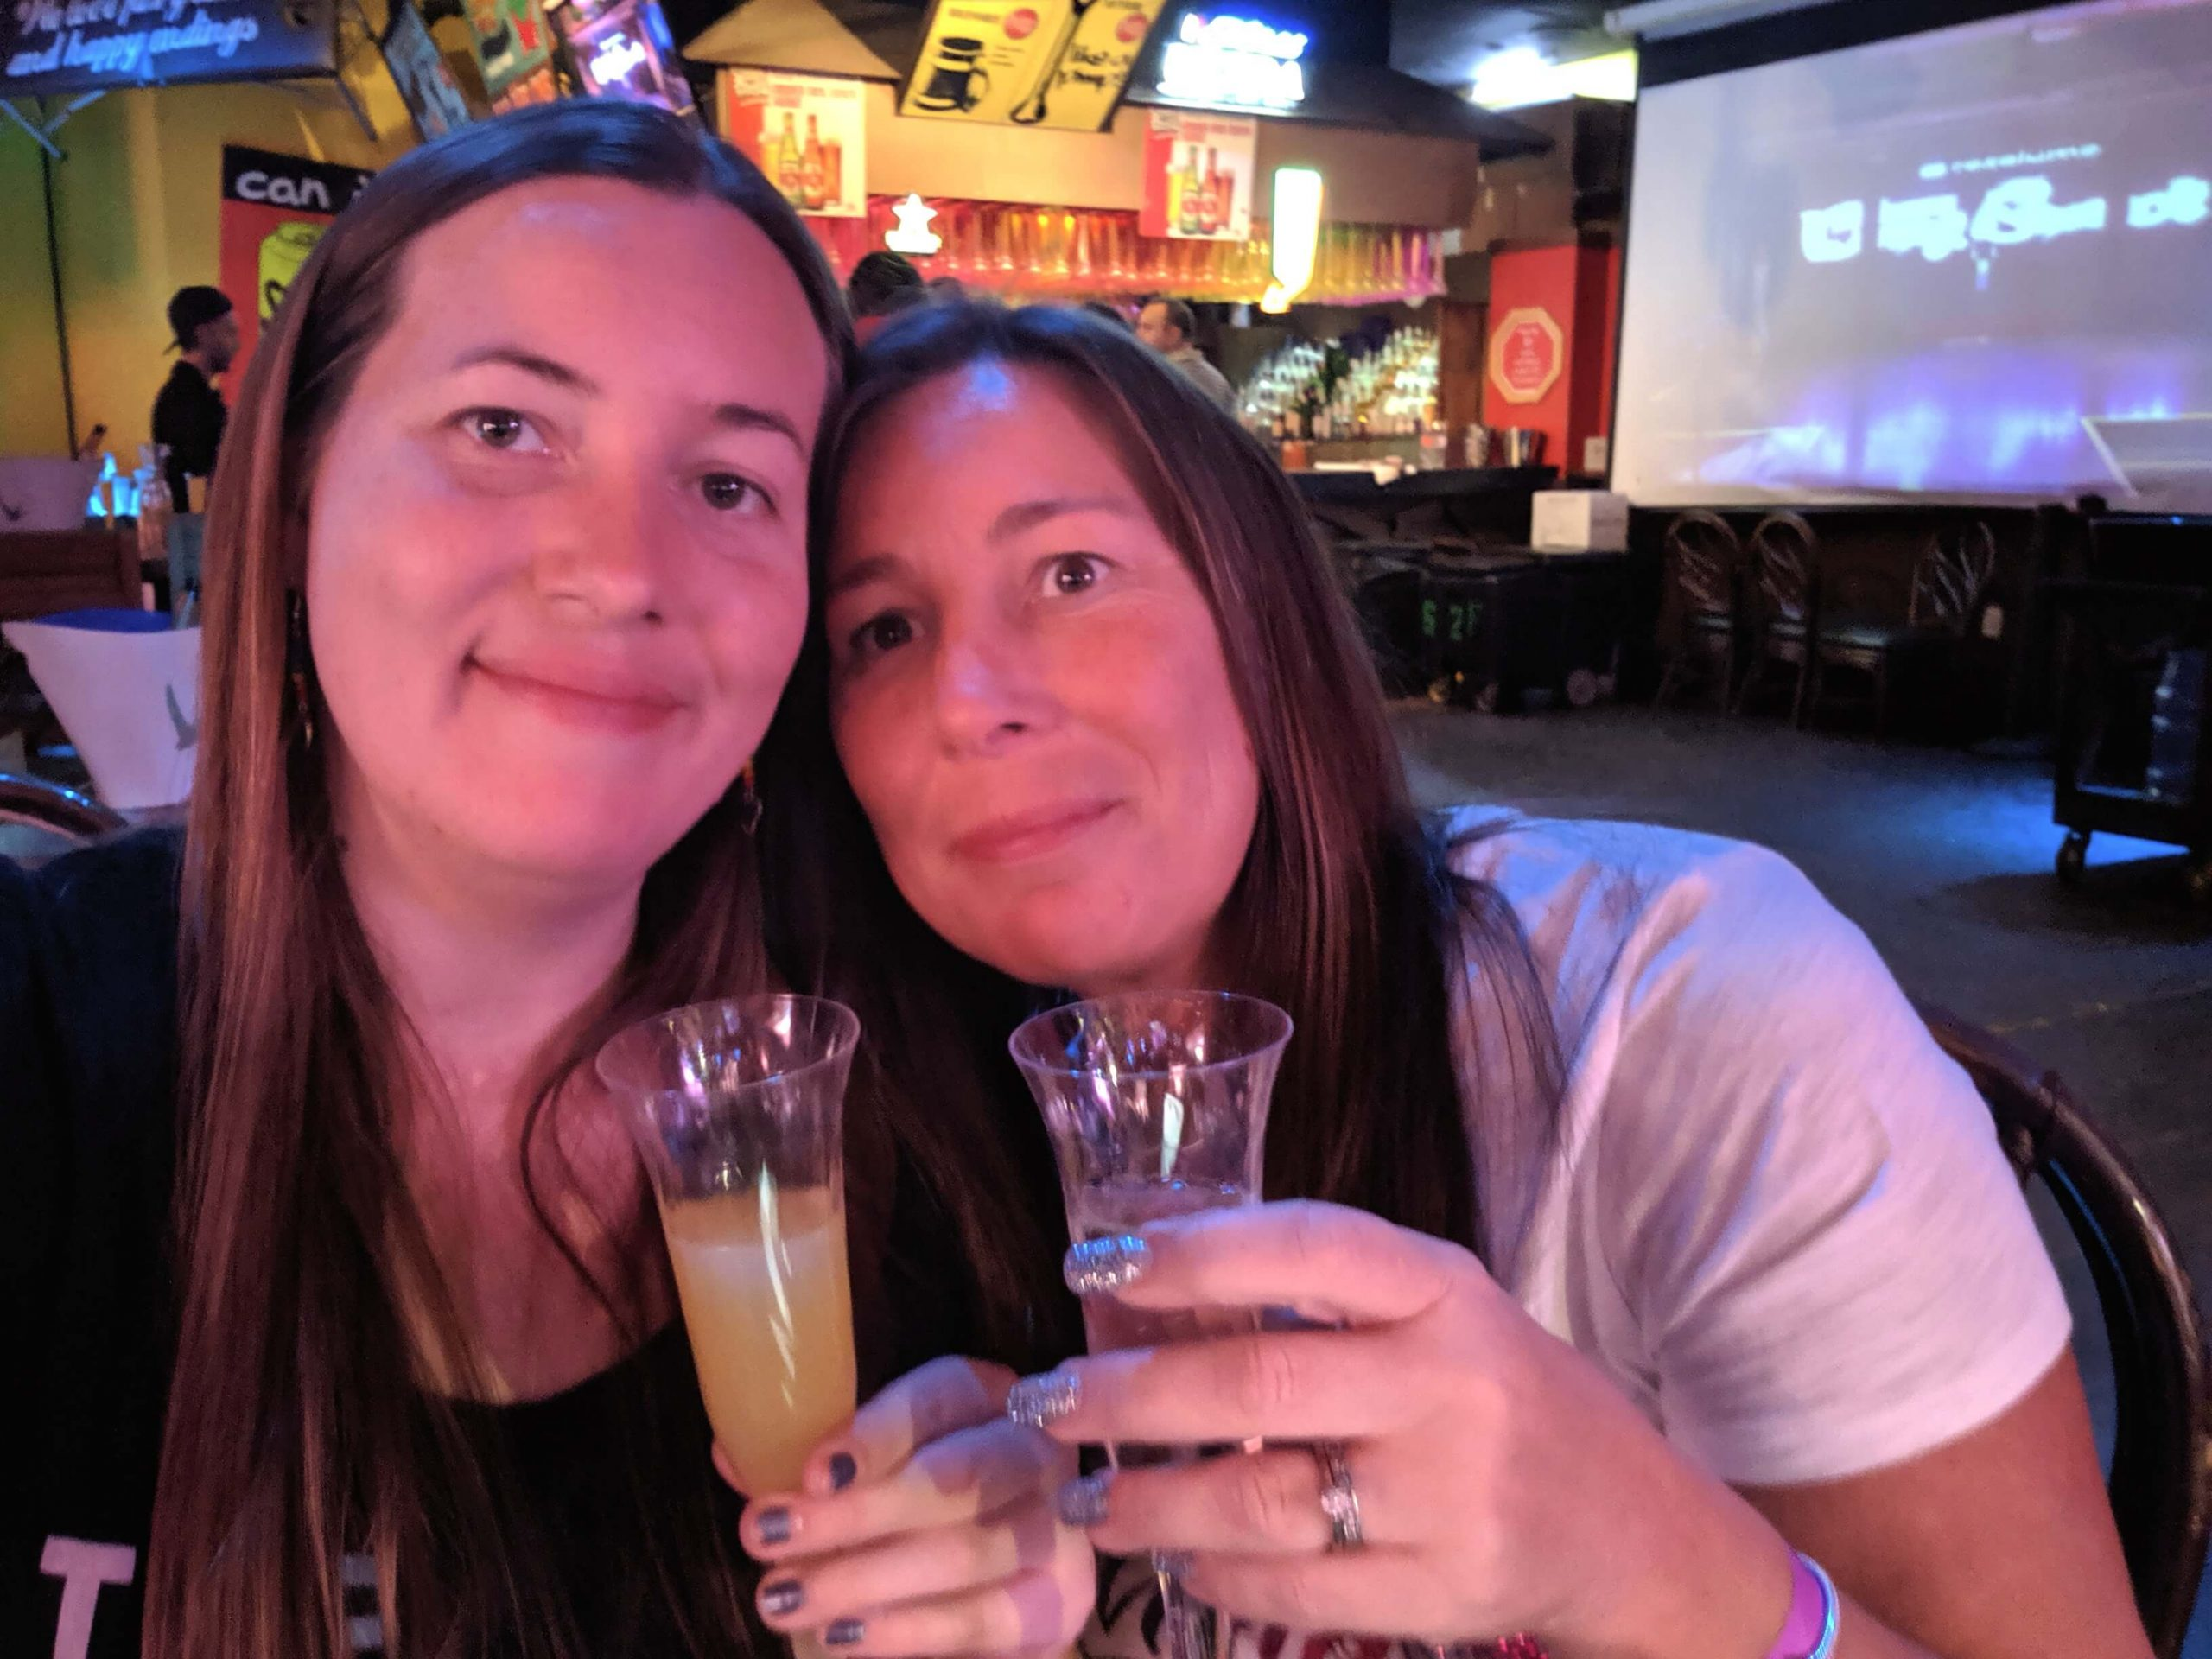 Me and mum enjoying our mimosas at the Drag Queen Brunch